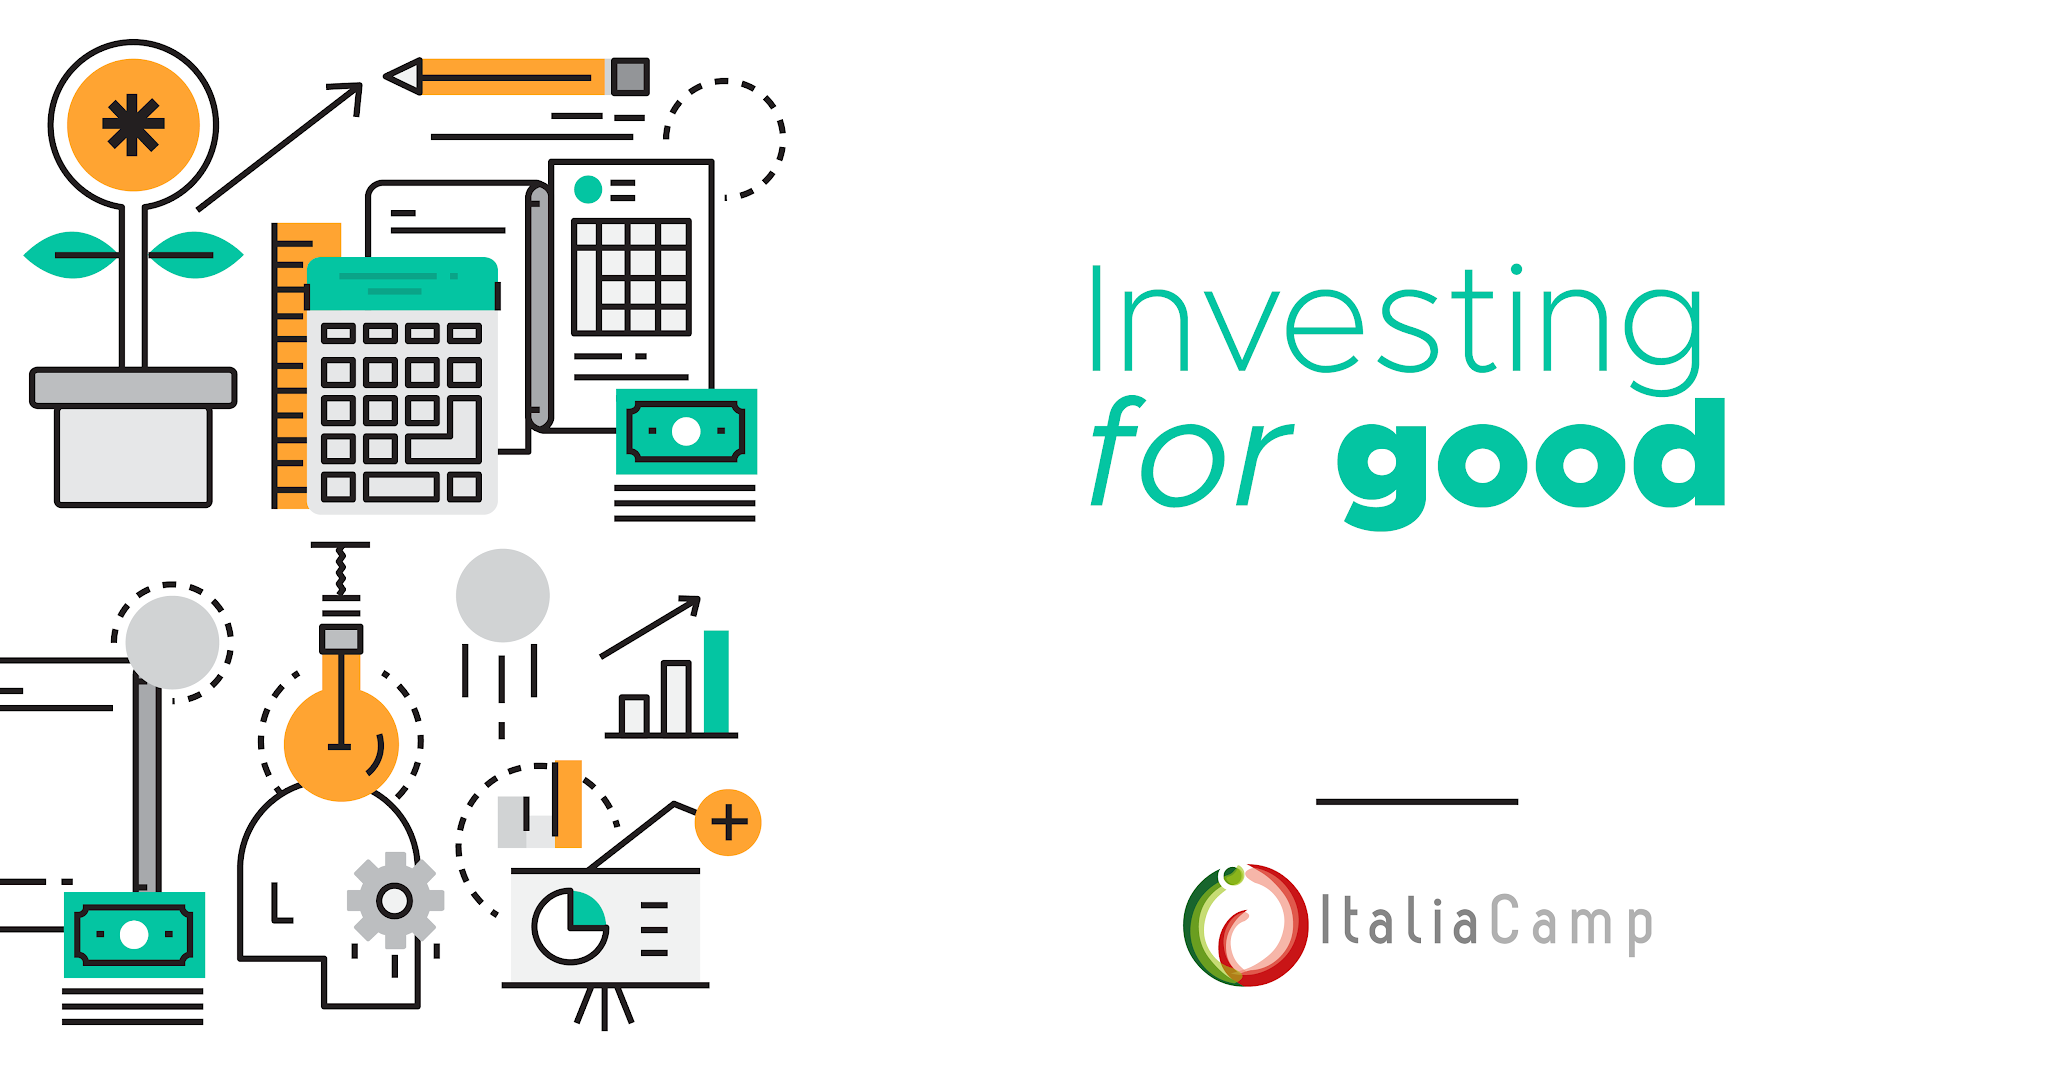 Investing for Good Luiss